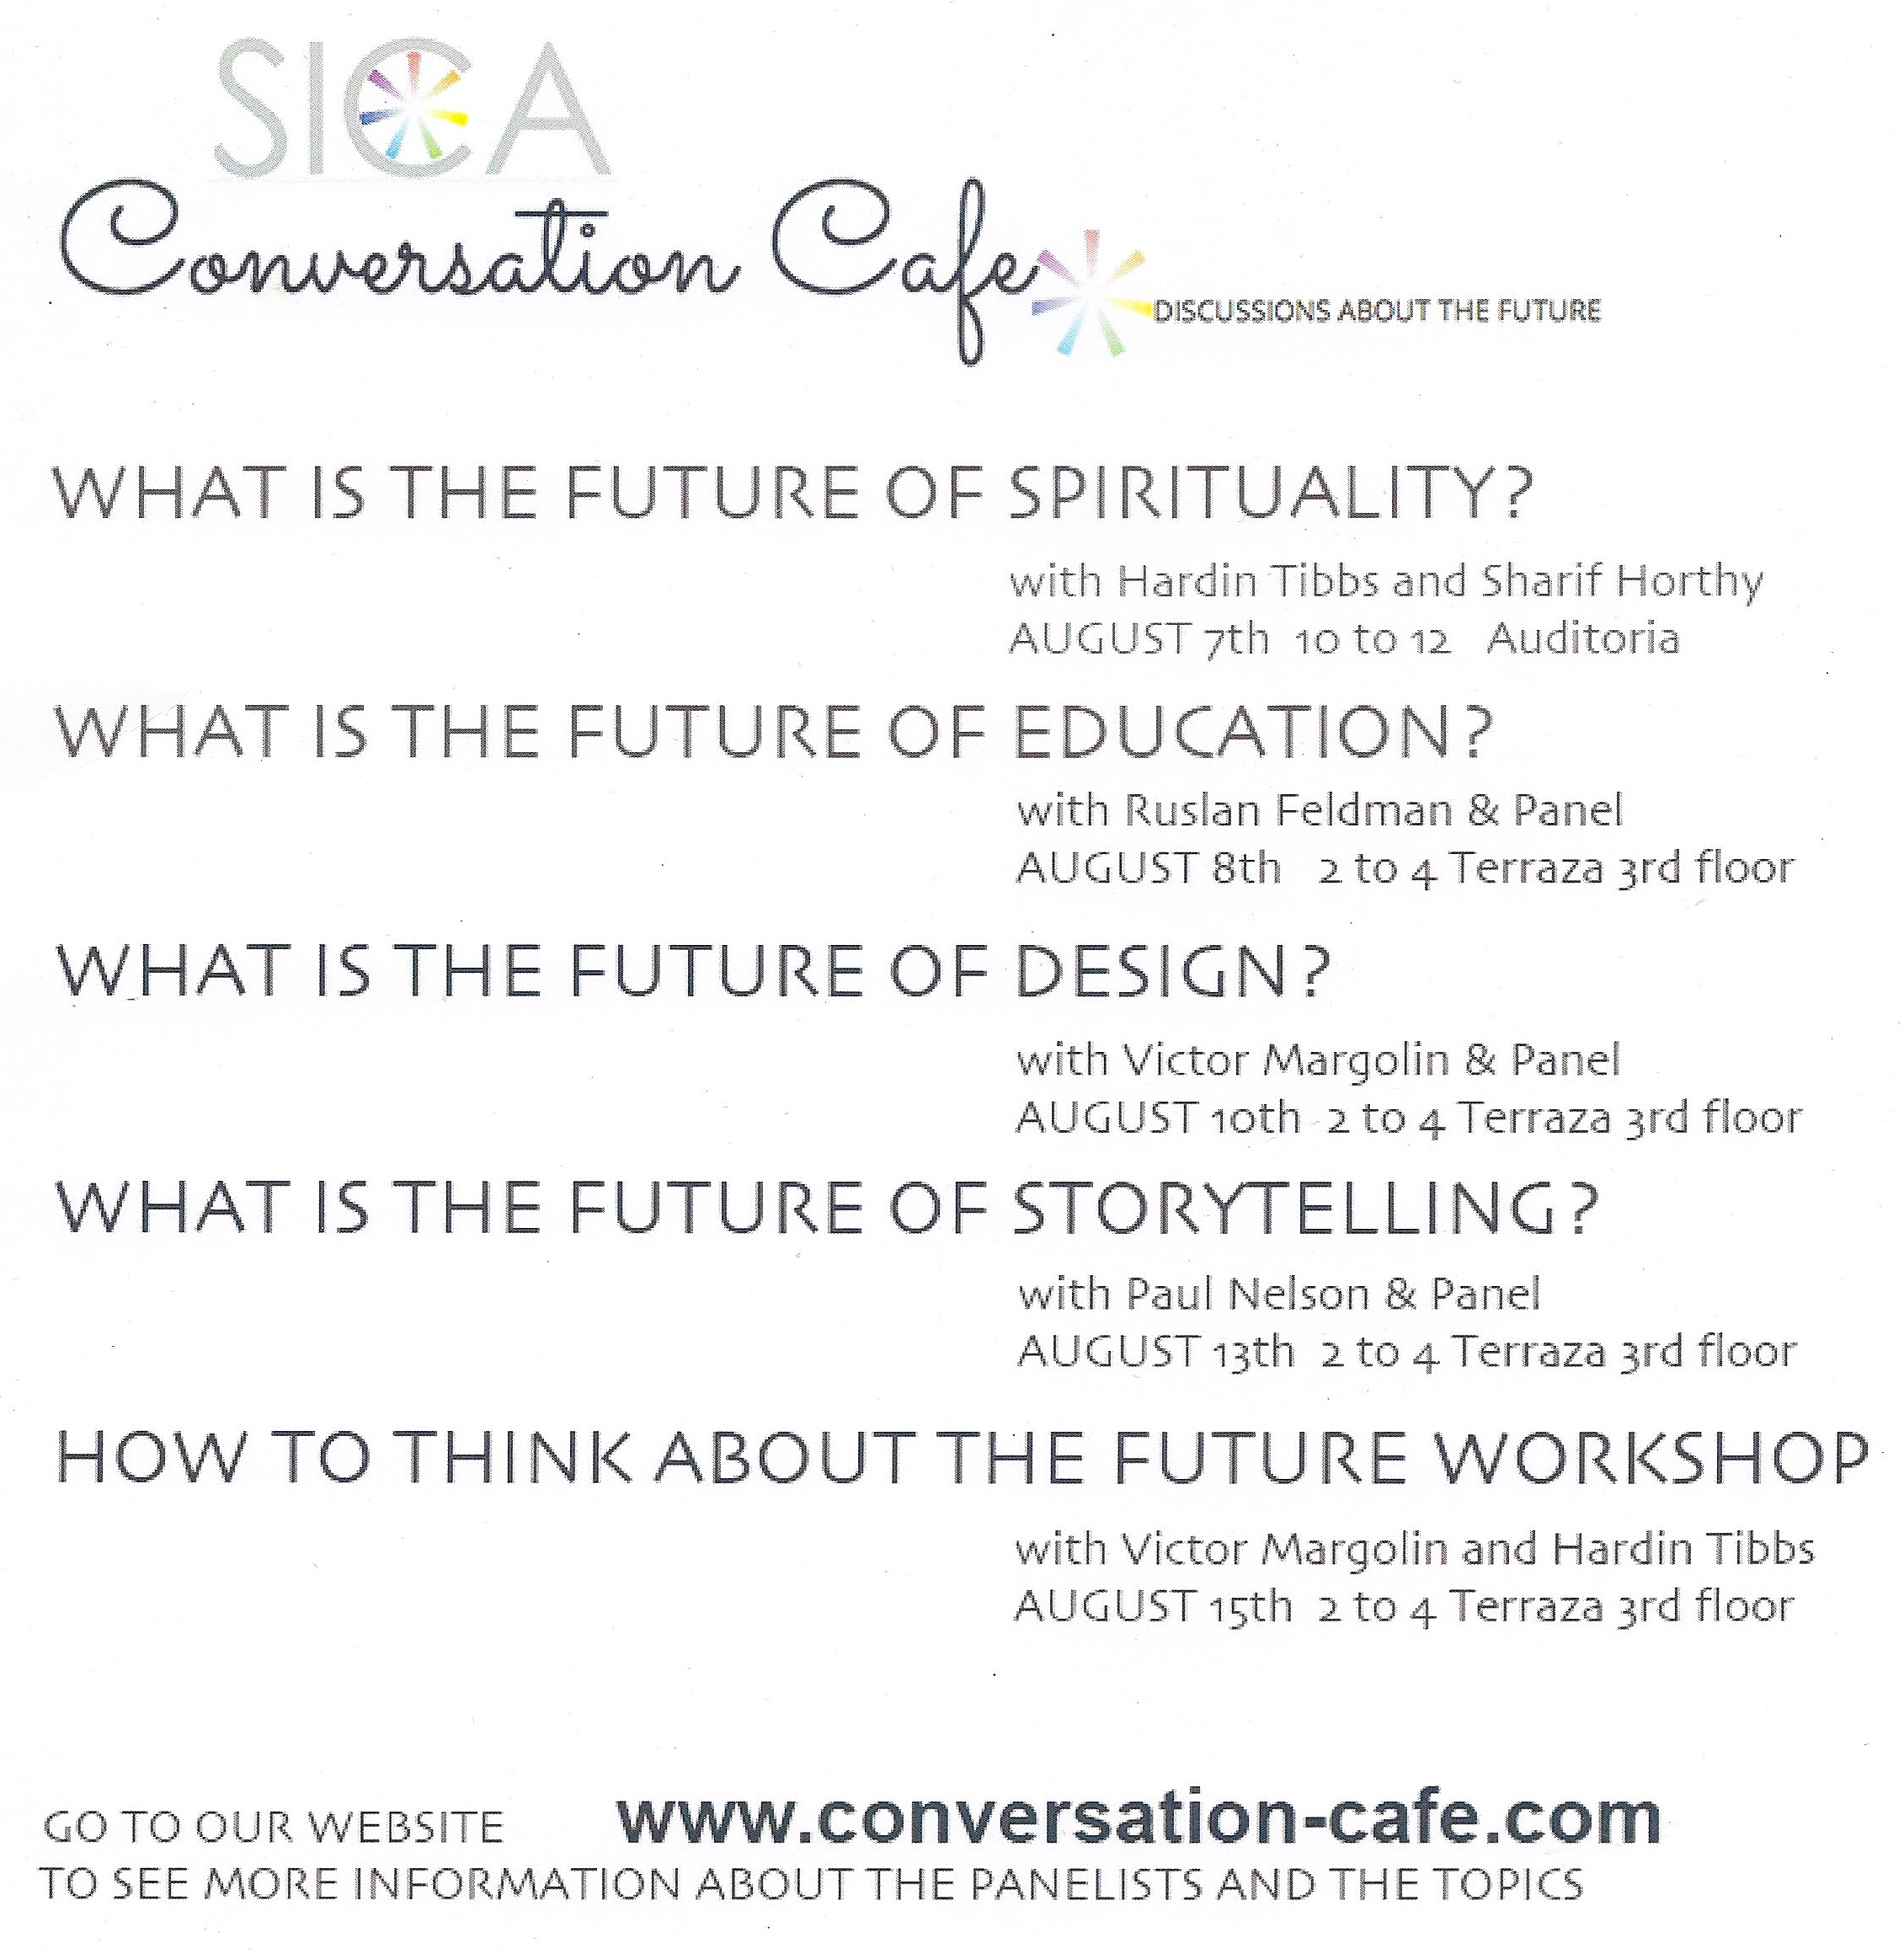 Conversation Cafe Flyer